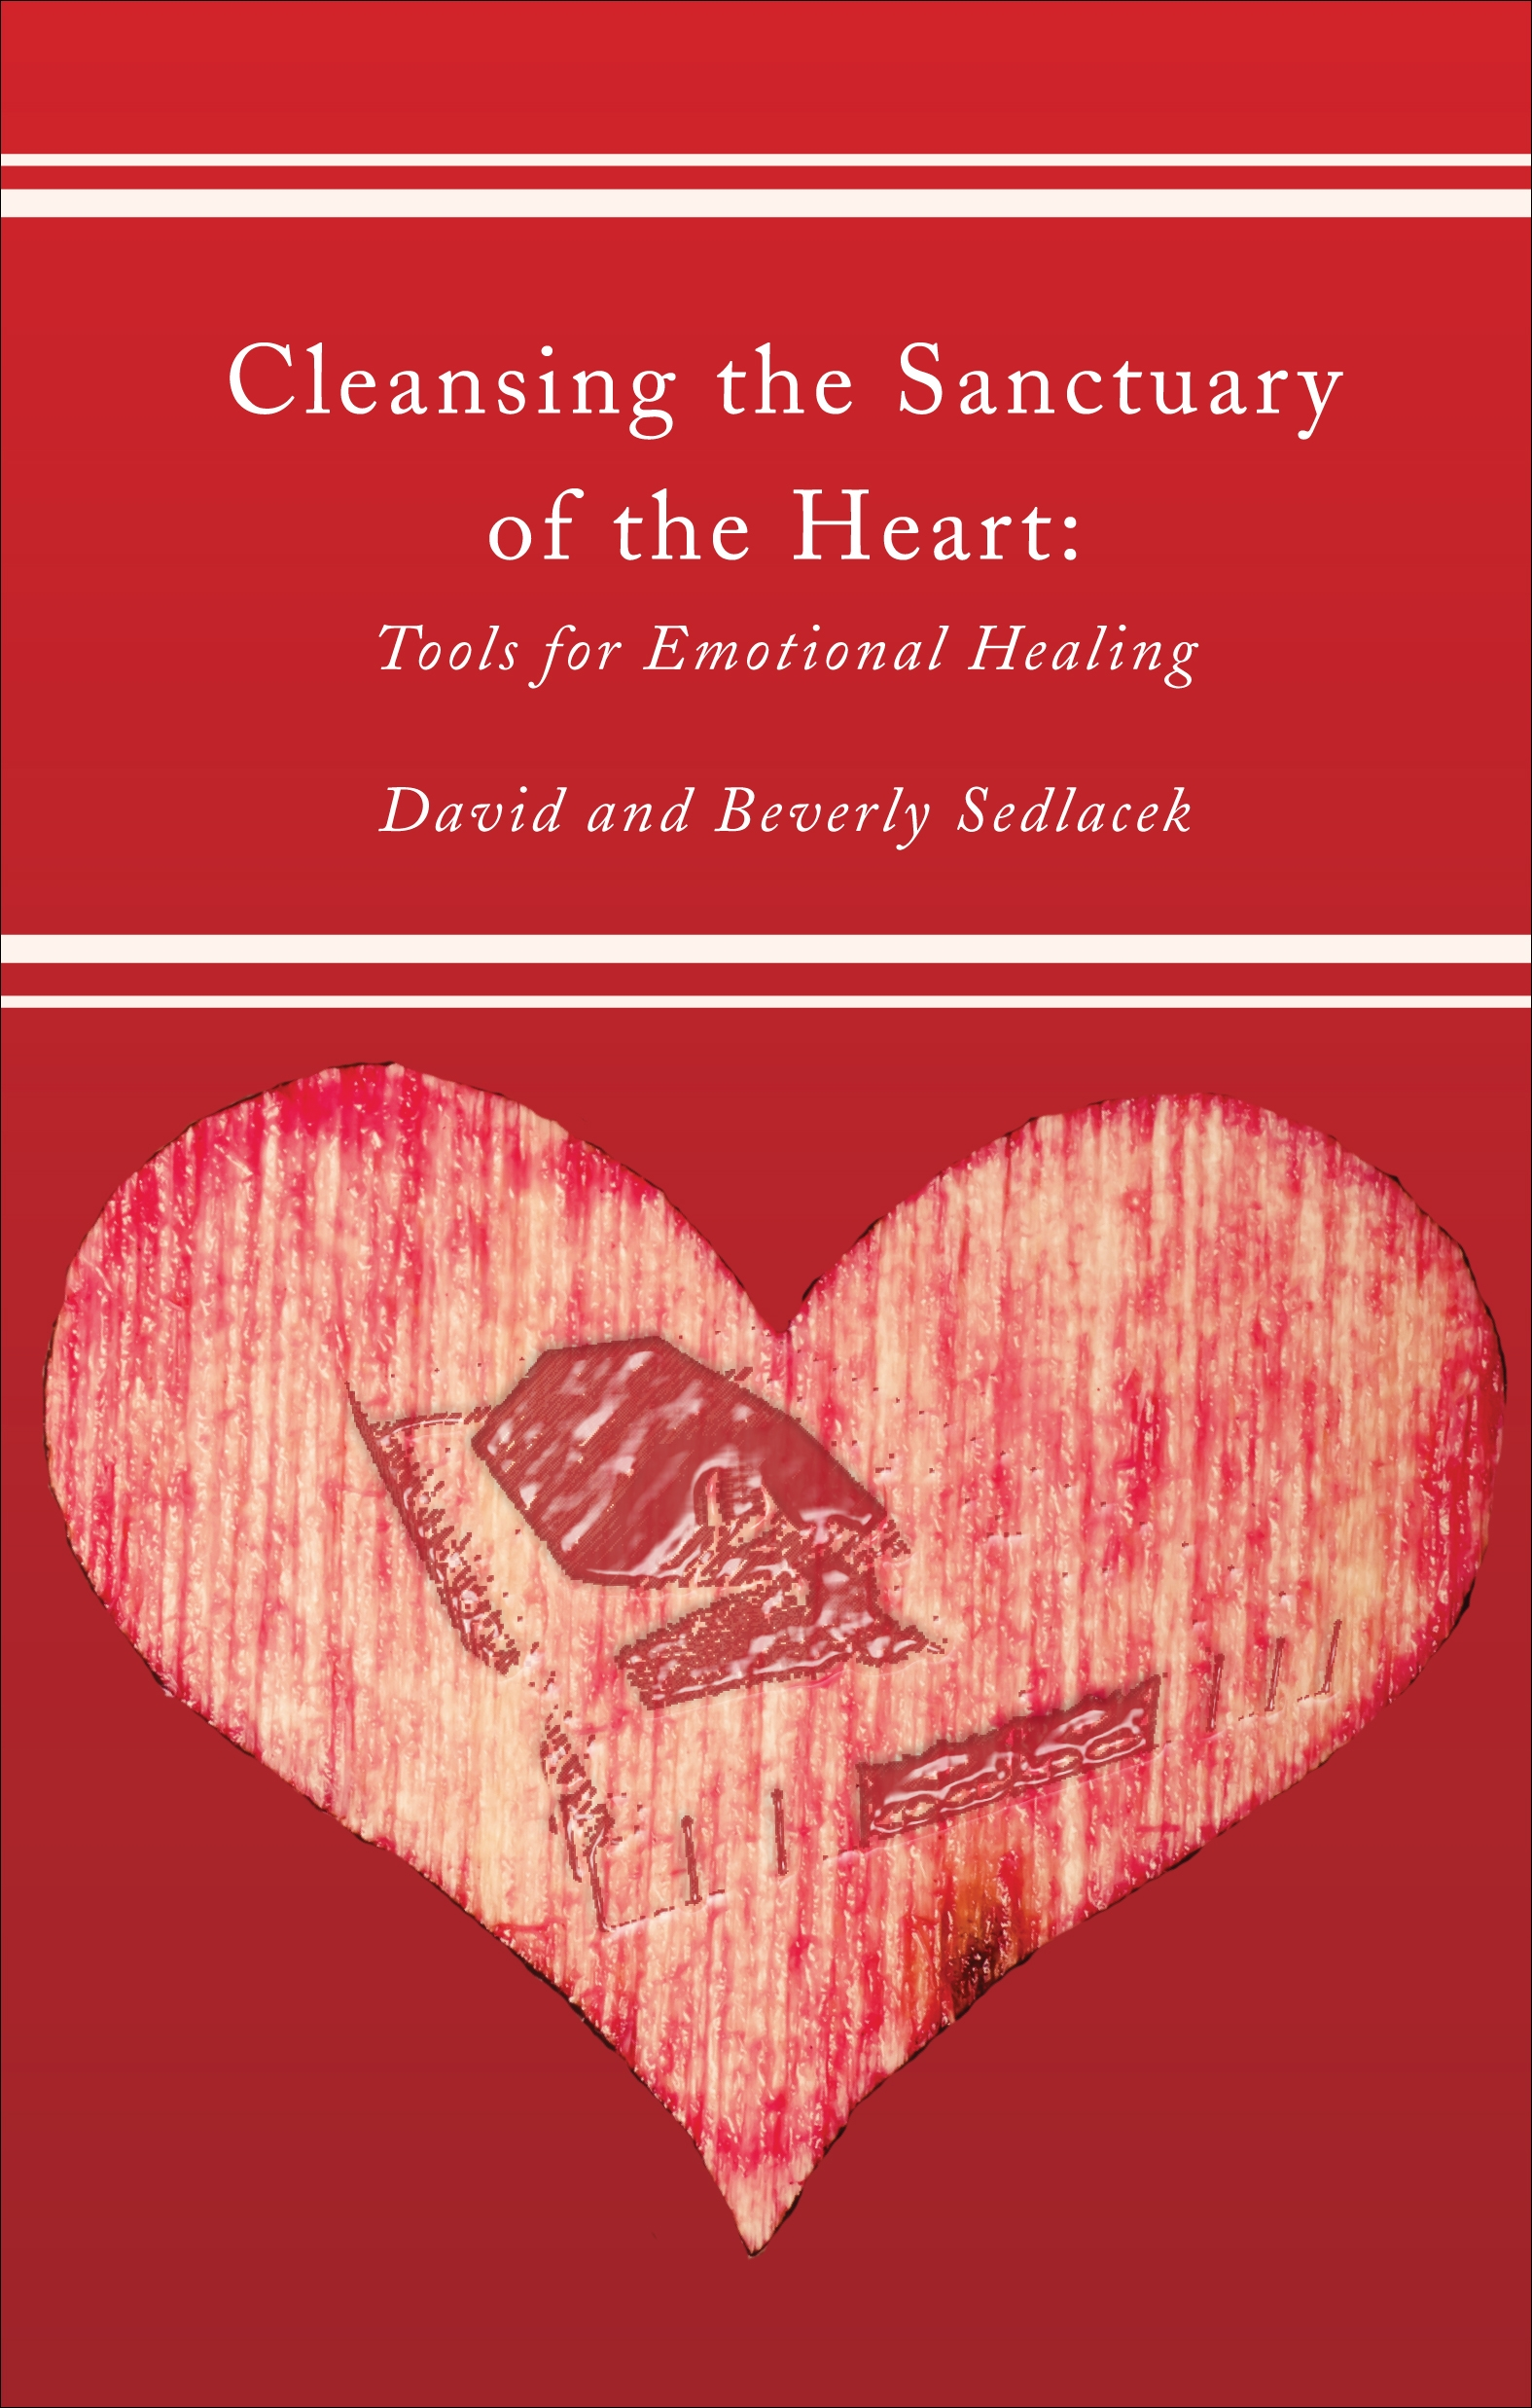 Cleansing the Sanctuary of the Heart, Second Edition pdf